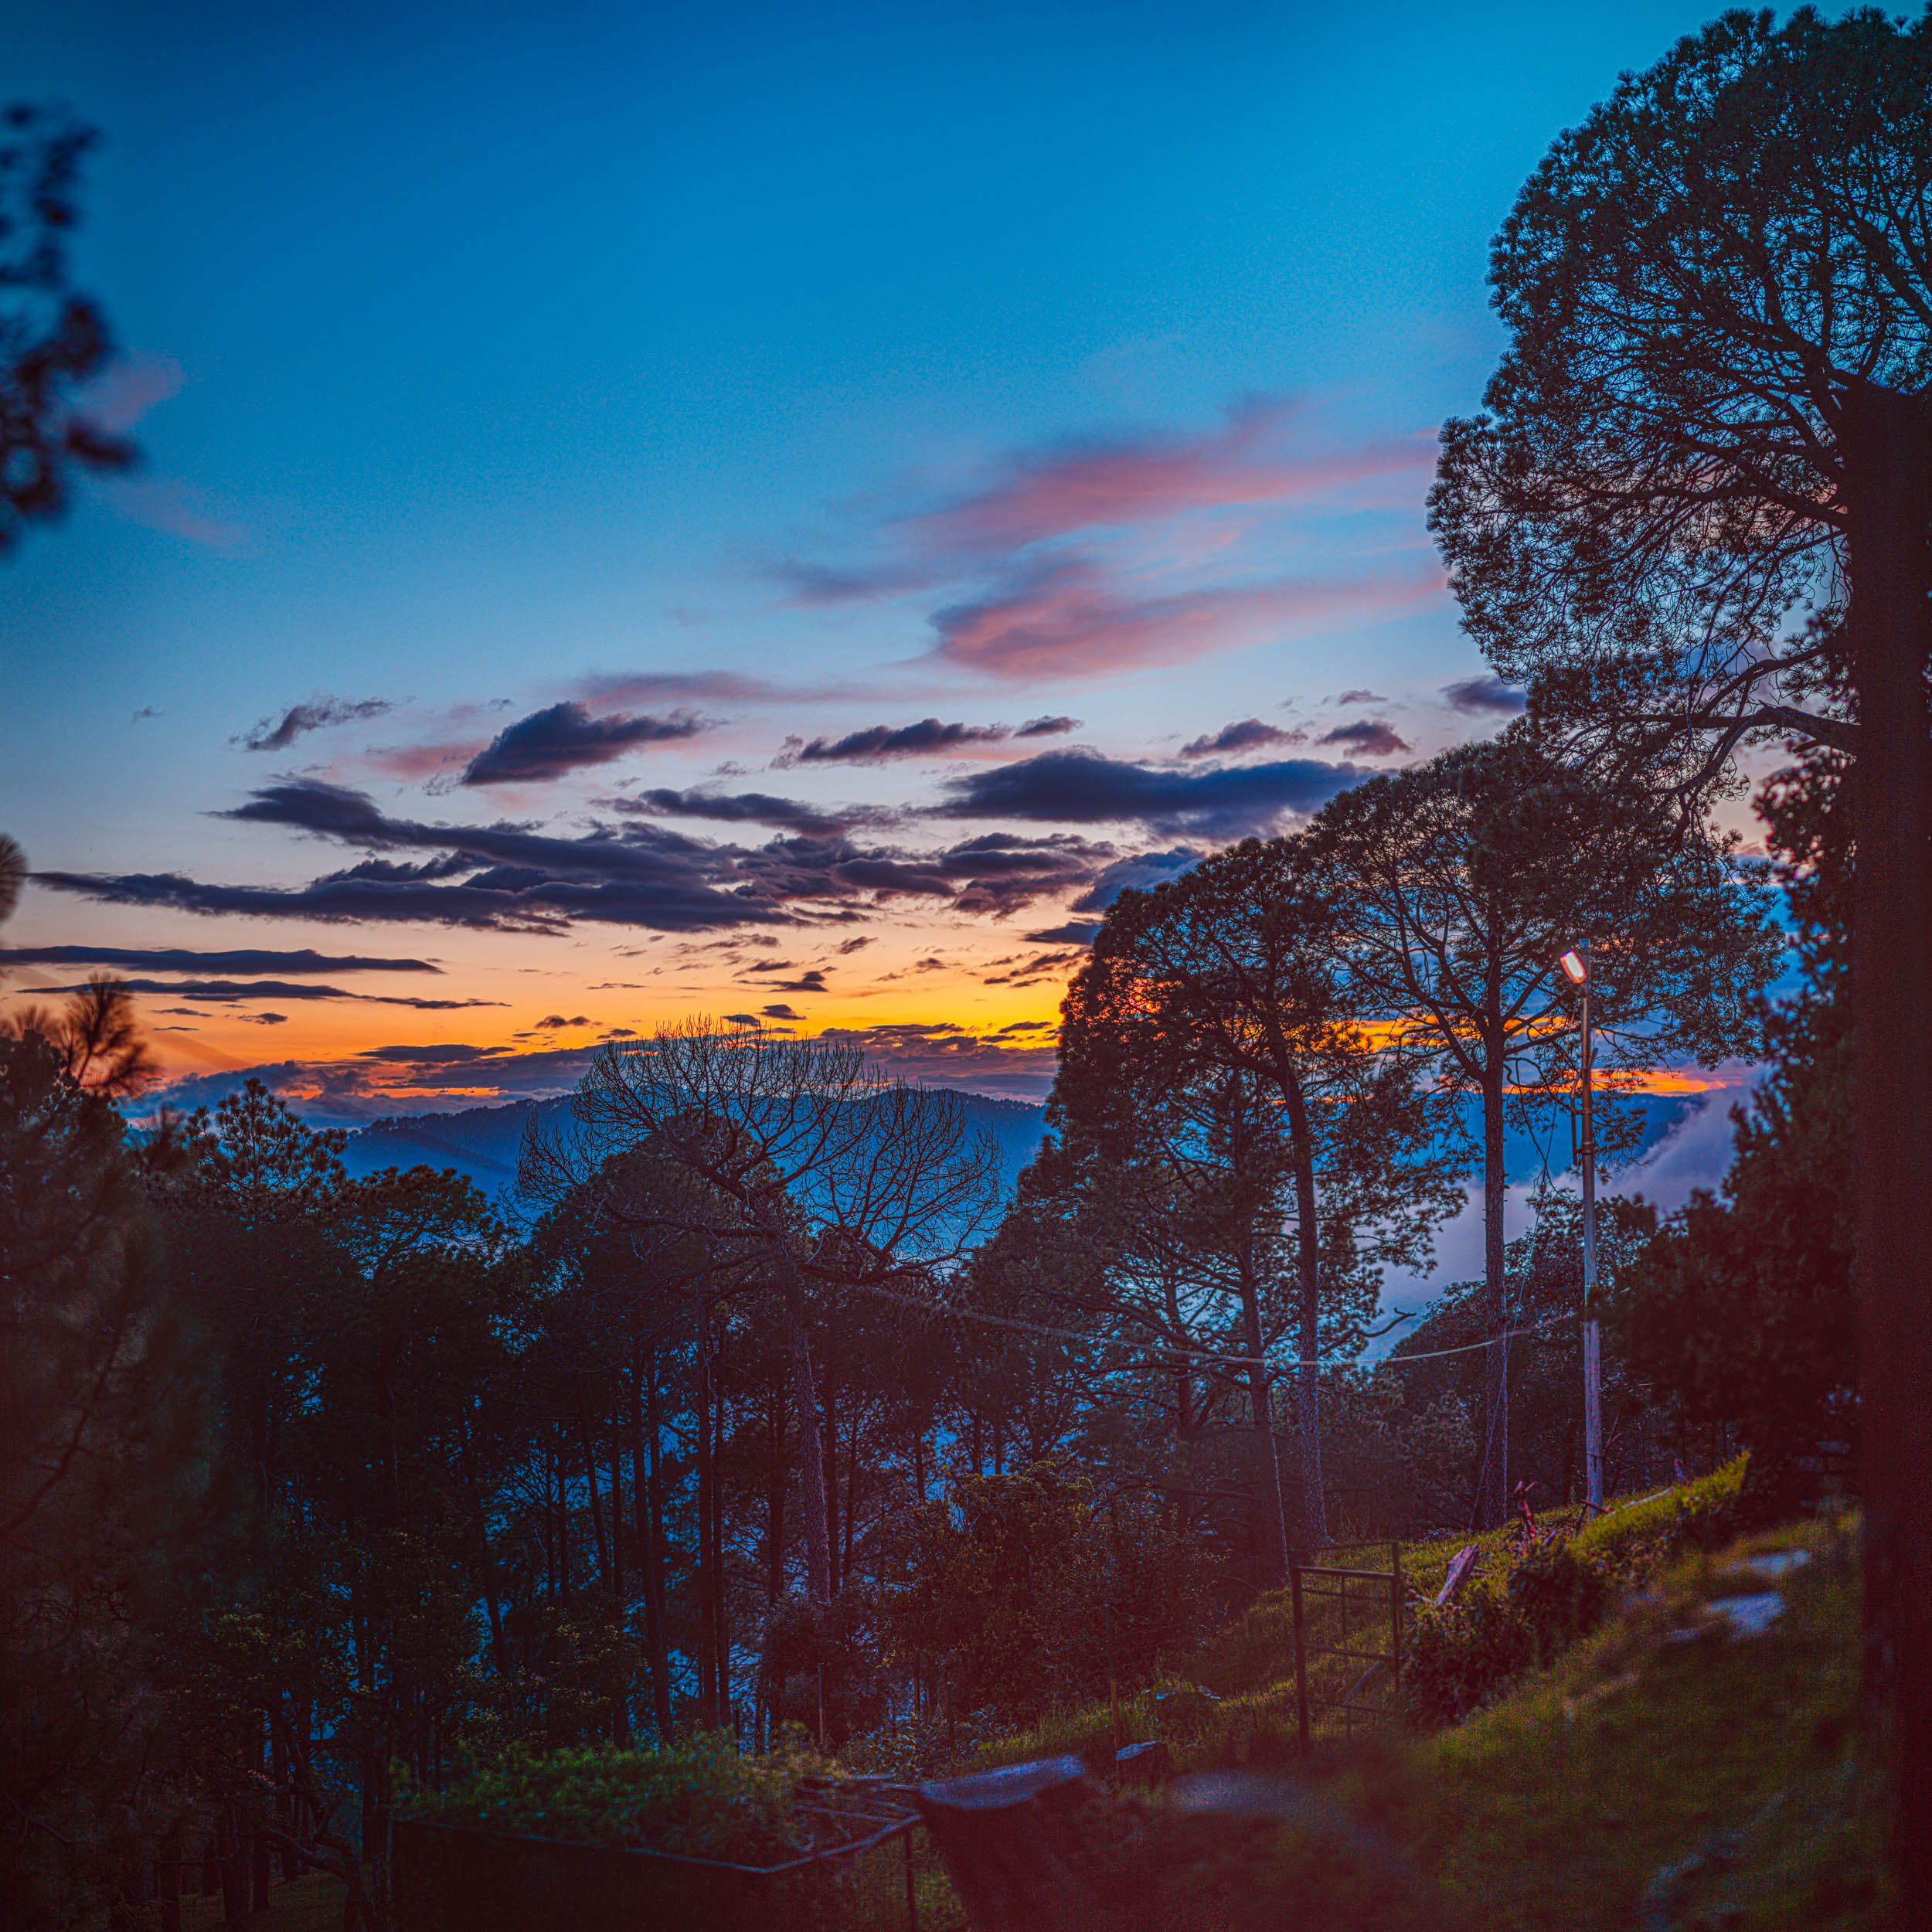 #EyesForDestinations, #EyesForIndia, #NAINAxRanikhet, architecture photography, Destination Photography, Landscape Photographer, Large Format Plate, naina redhu, naina.co, objects of vacation, professional photographer, ranikhet, Ranikhet Movie Theater, Square Format, The Queen's Meadow, uttarakhand, vacation objects, vacationobjects, sunset, sunsets